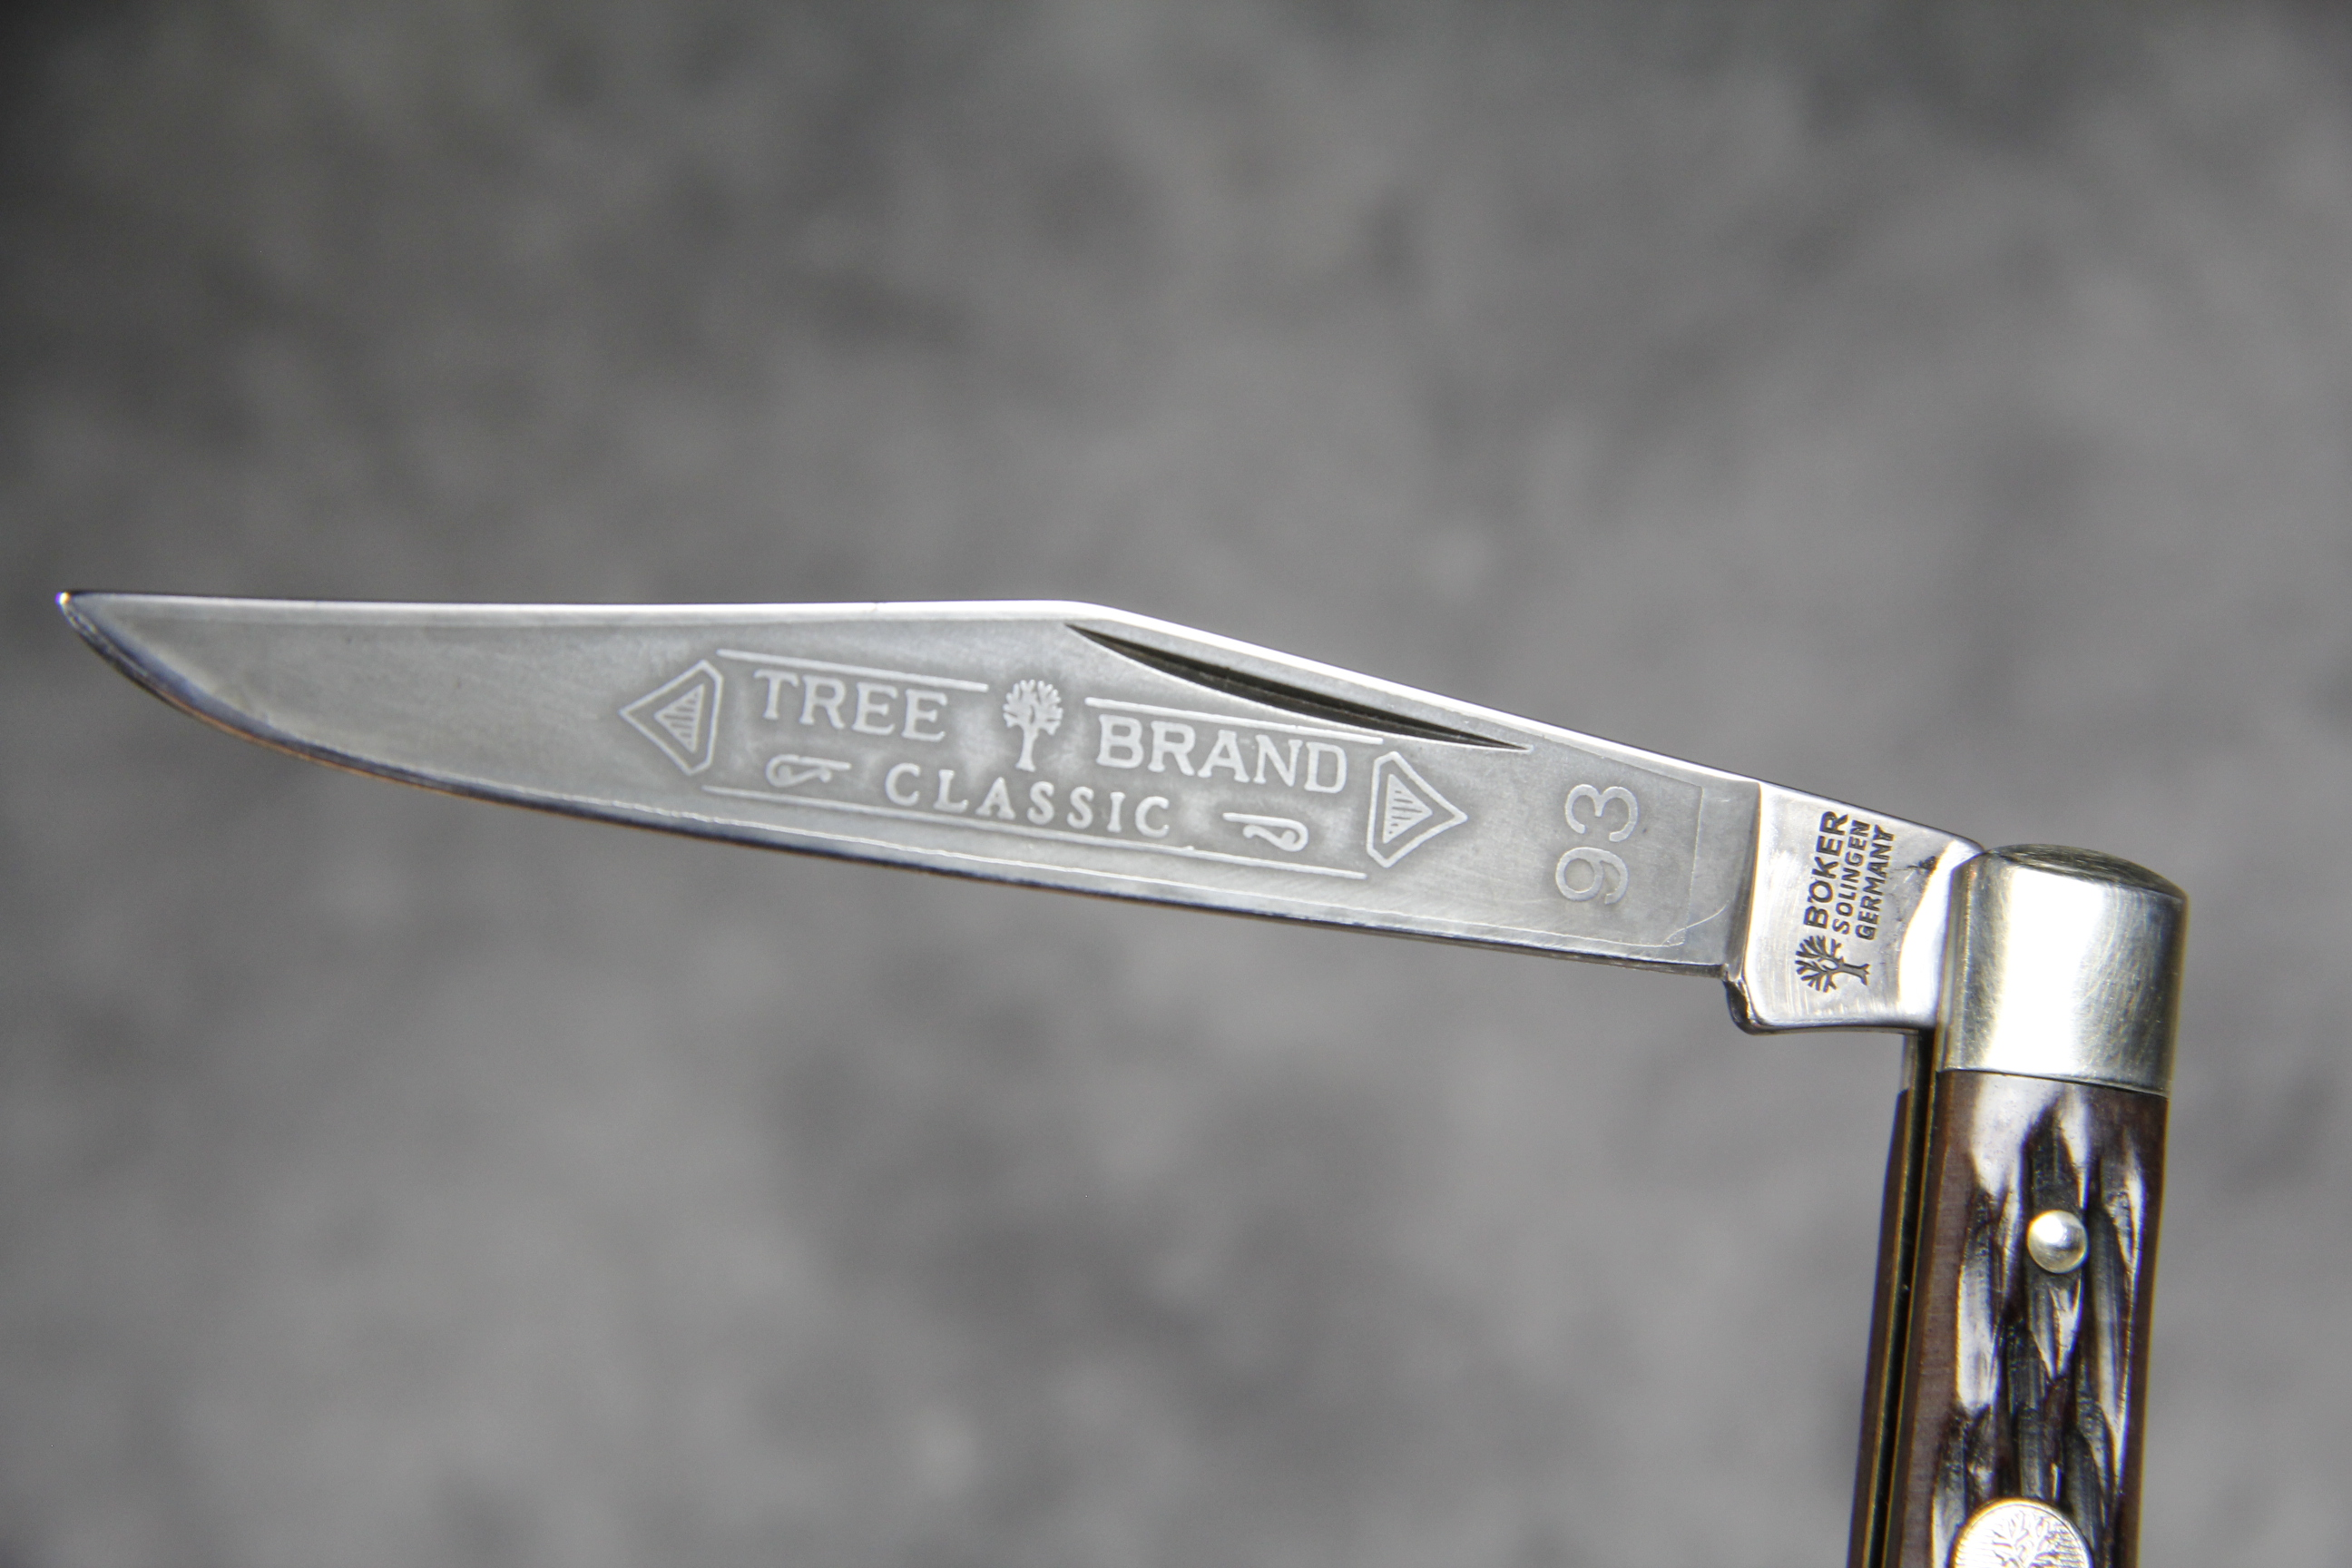 dating boker tree brand knives This beautiful boker tree brand rosewood pen is handcrafted in solingen findsomeone dating & personals brand: böker tree brand knives.